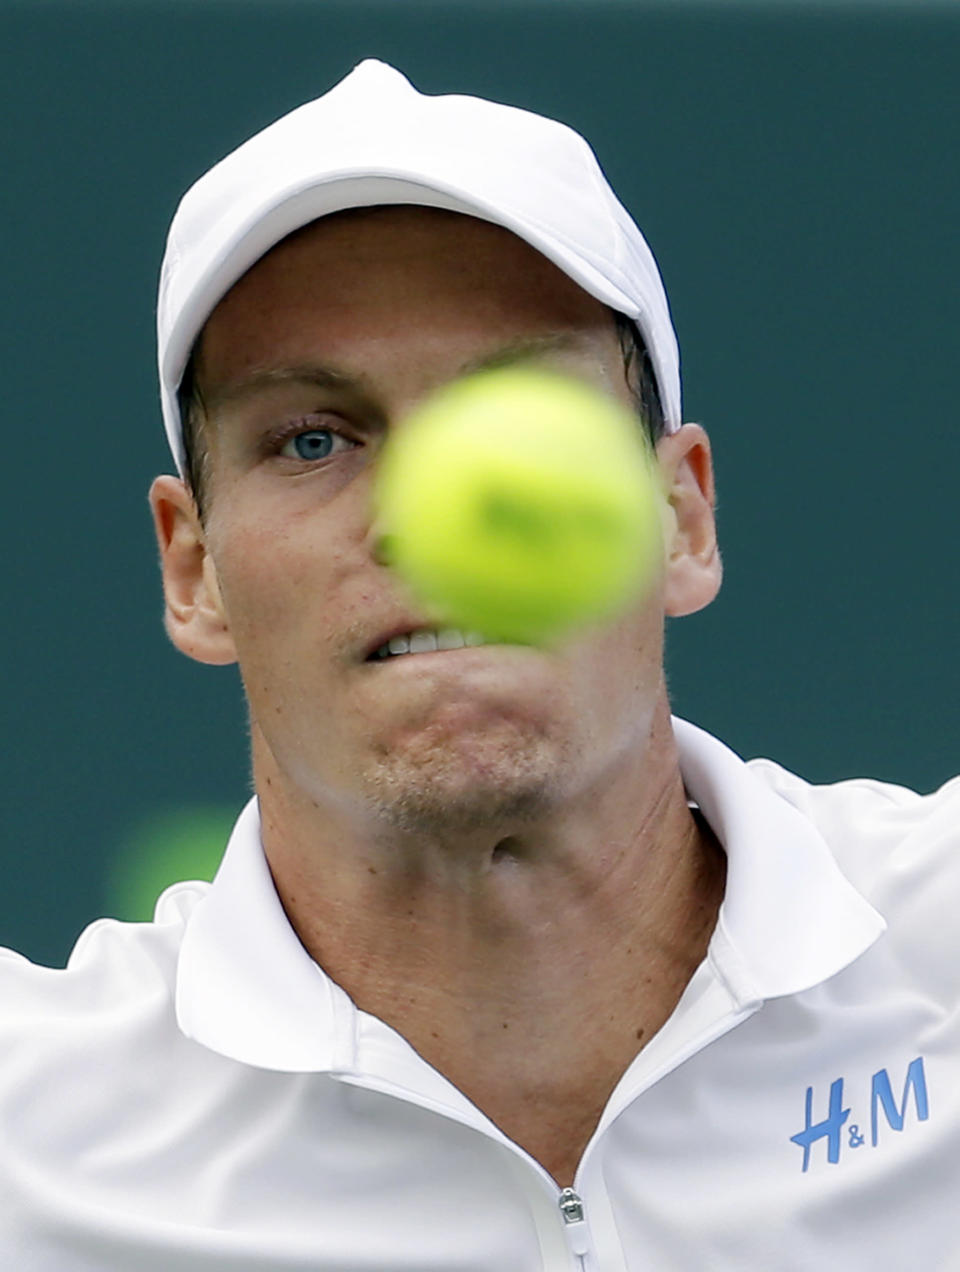 Tomas Berdych, of the Czech Republic, keeps his eyes on the ball as he returns to Alexandr Dolgopolov, of Ukraine, at the Sony Open Tennis tournament in Key Biscayne, Fla., Thursday, March 27, 2014. Berdych won 6-4, 7-6 (3). (AP Photo/Alan Diaz)